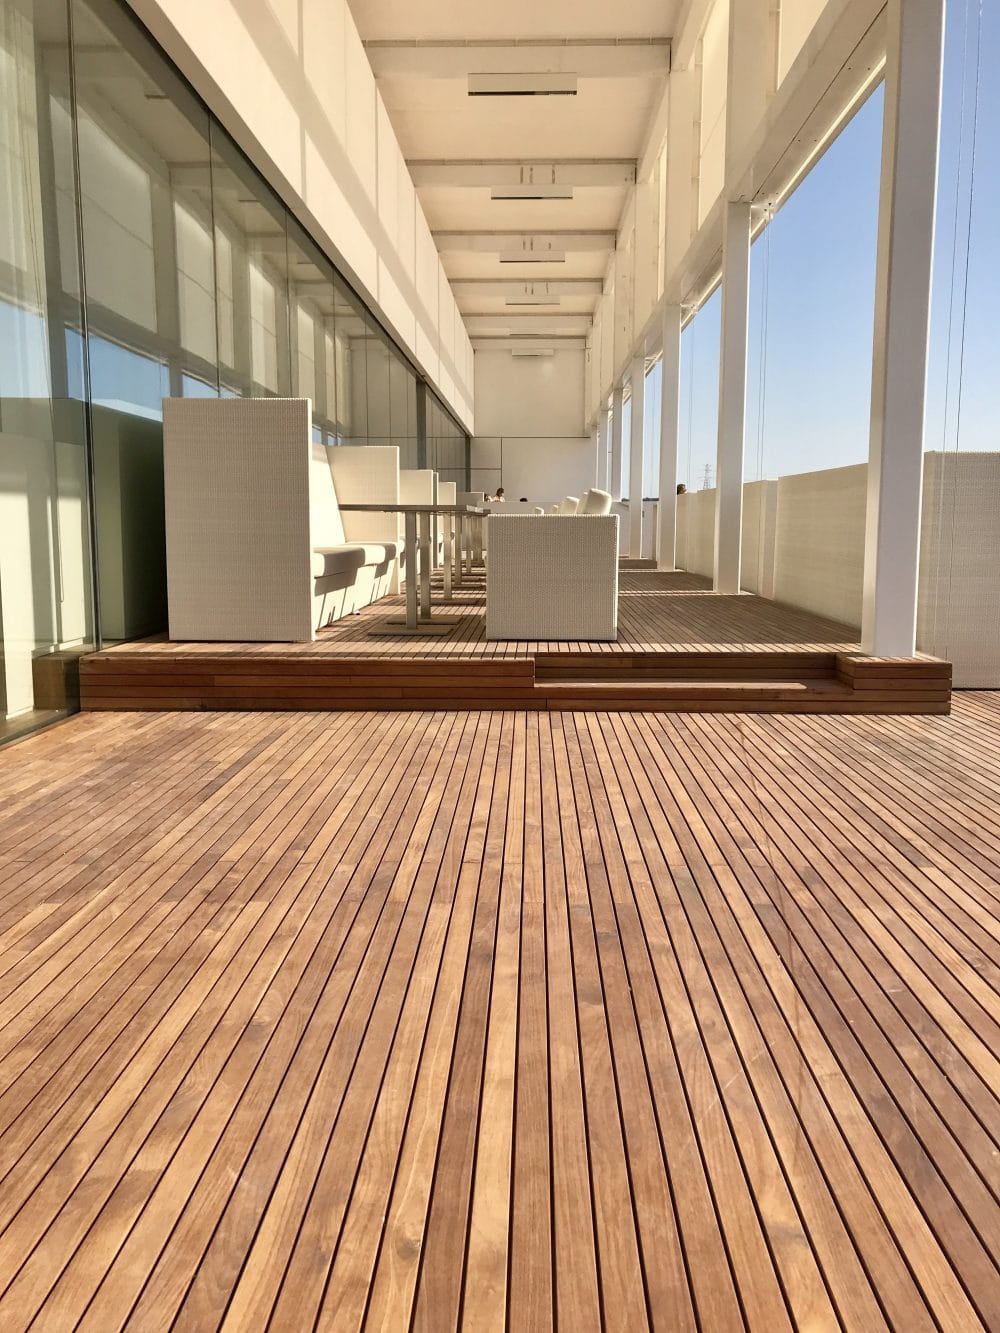 Teak decking terrace in Abu Dhabi